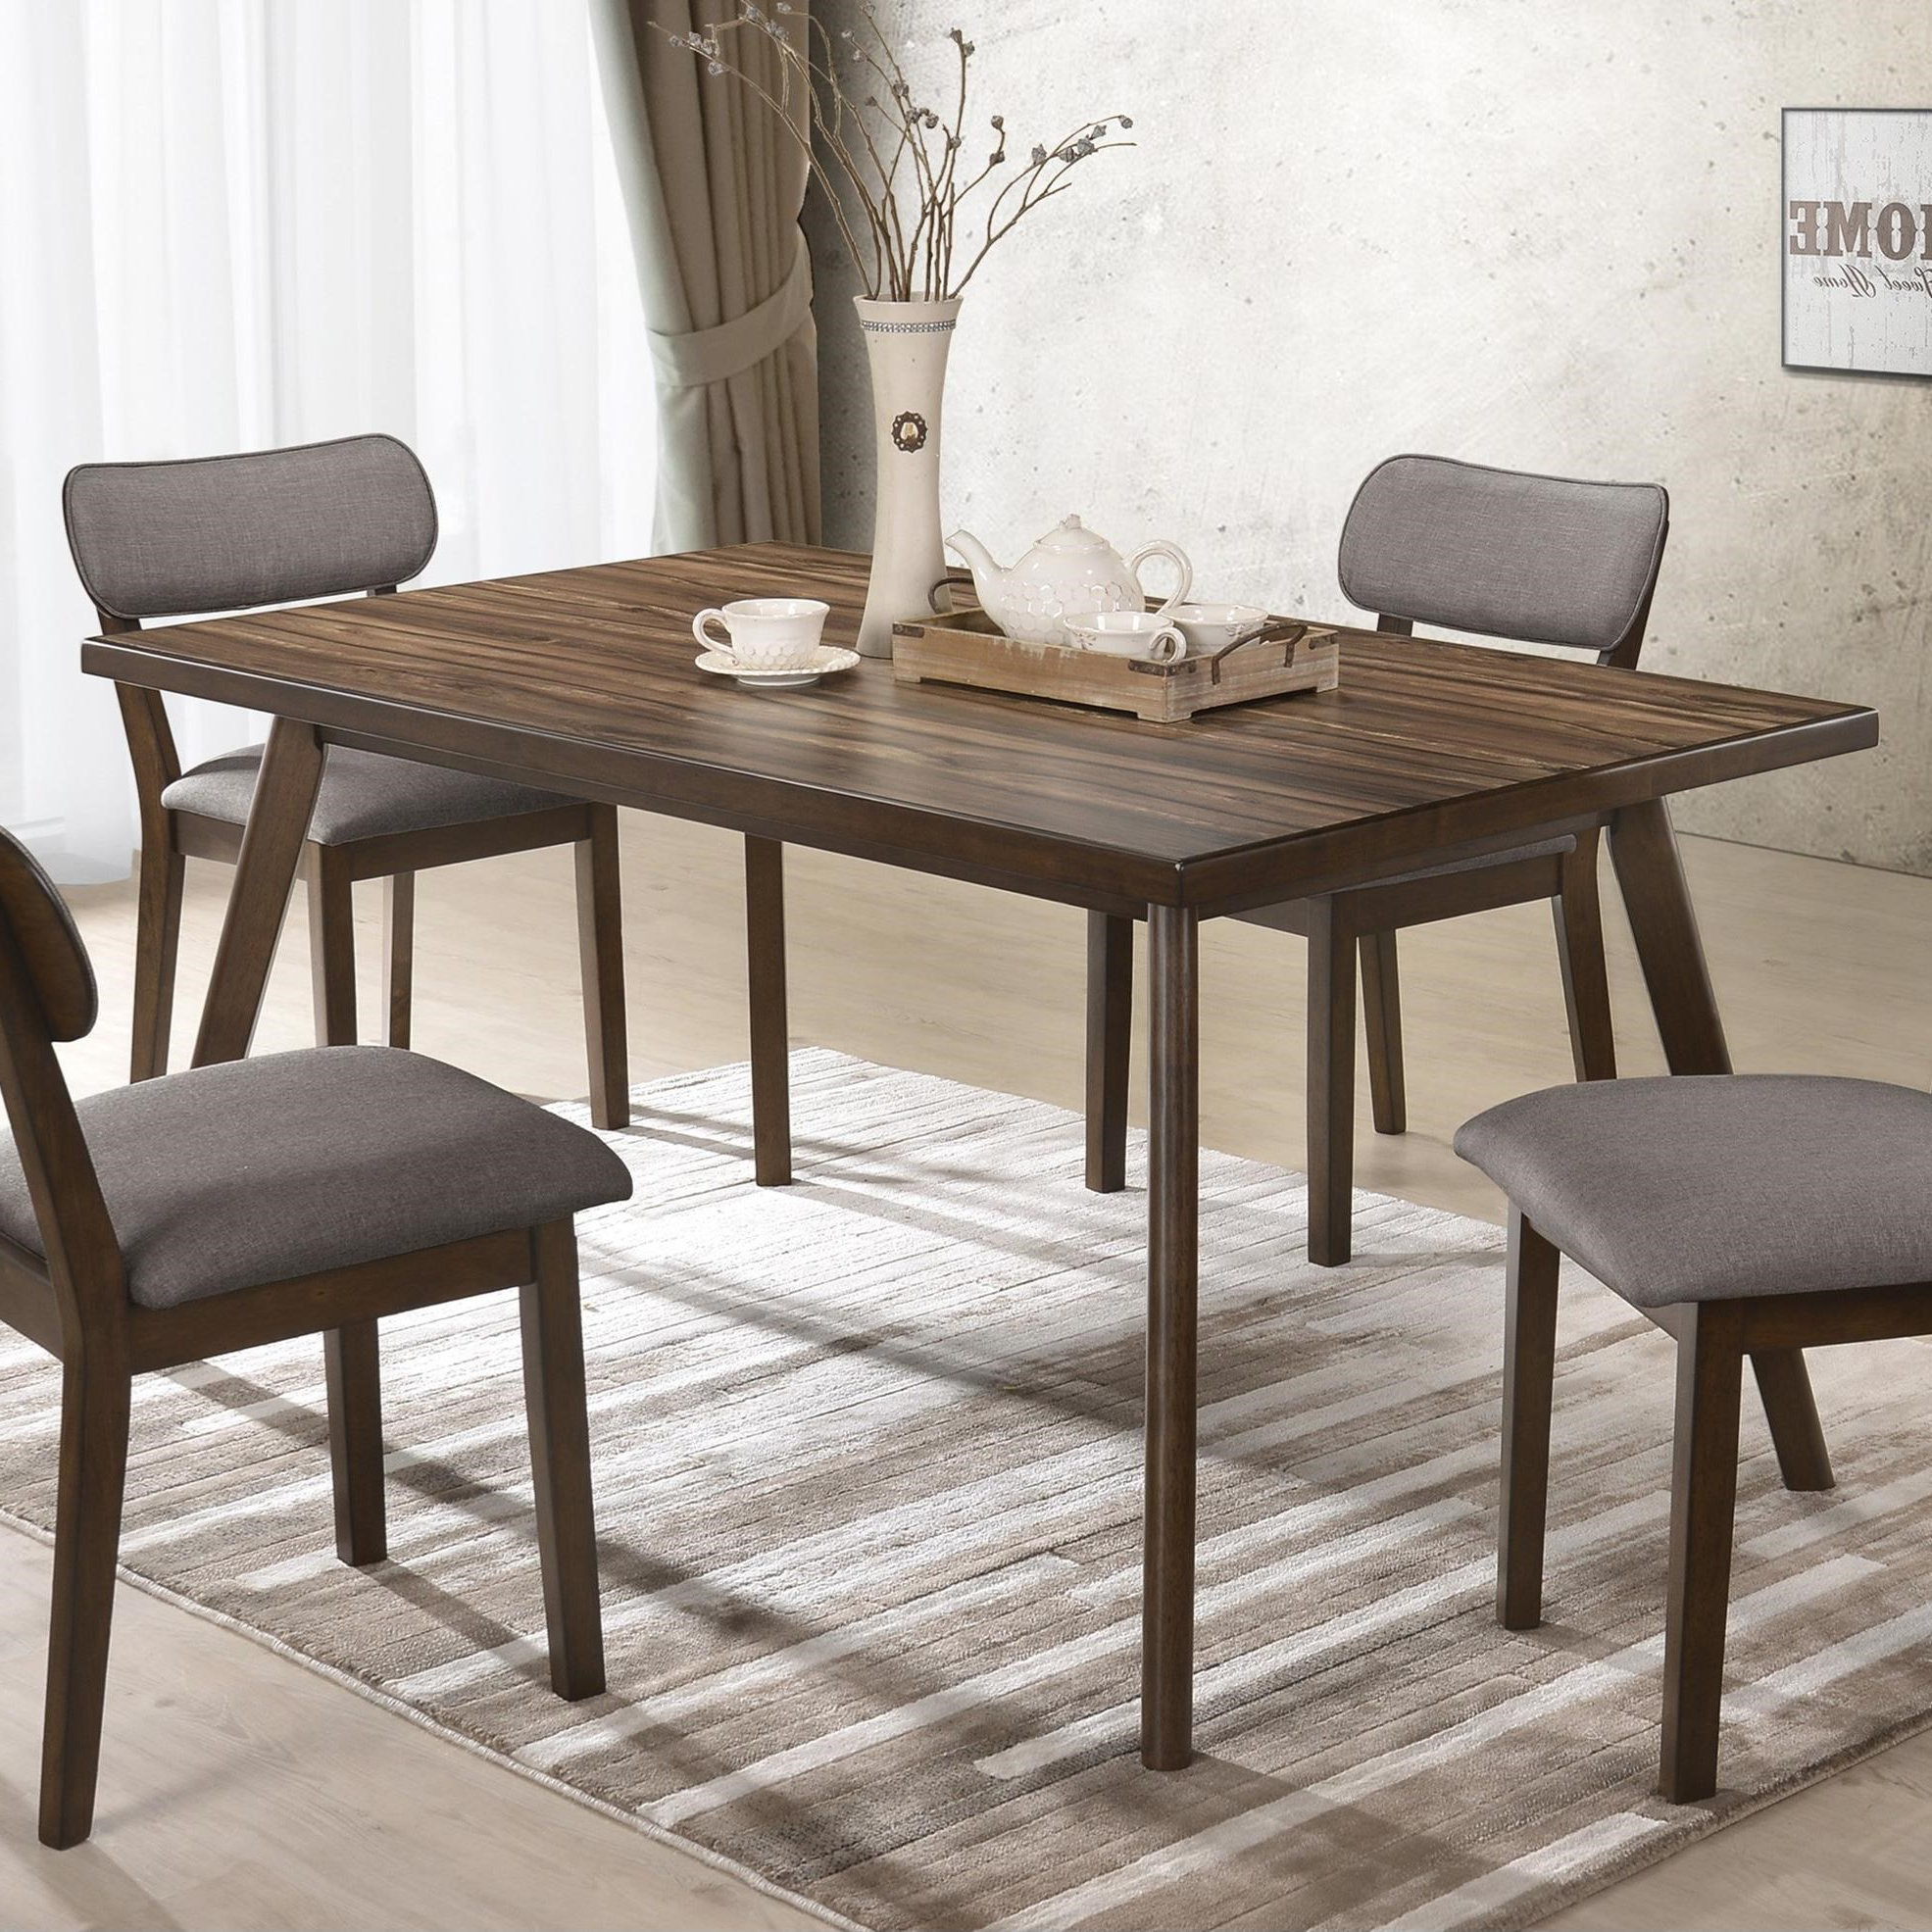 Mid Century Rectangular Top Dining Tables With Wood Legs Intended For 2019 Crown Mark Gina 2247T 3659 Mid Century Modern Dining Table (View 12 of 25)